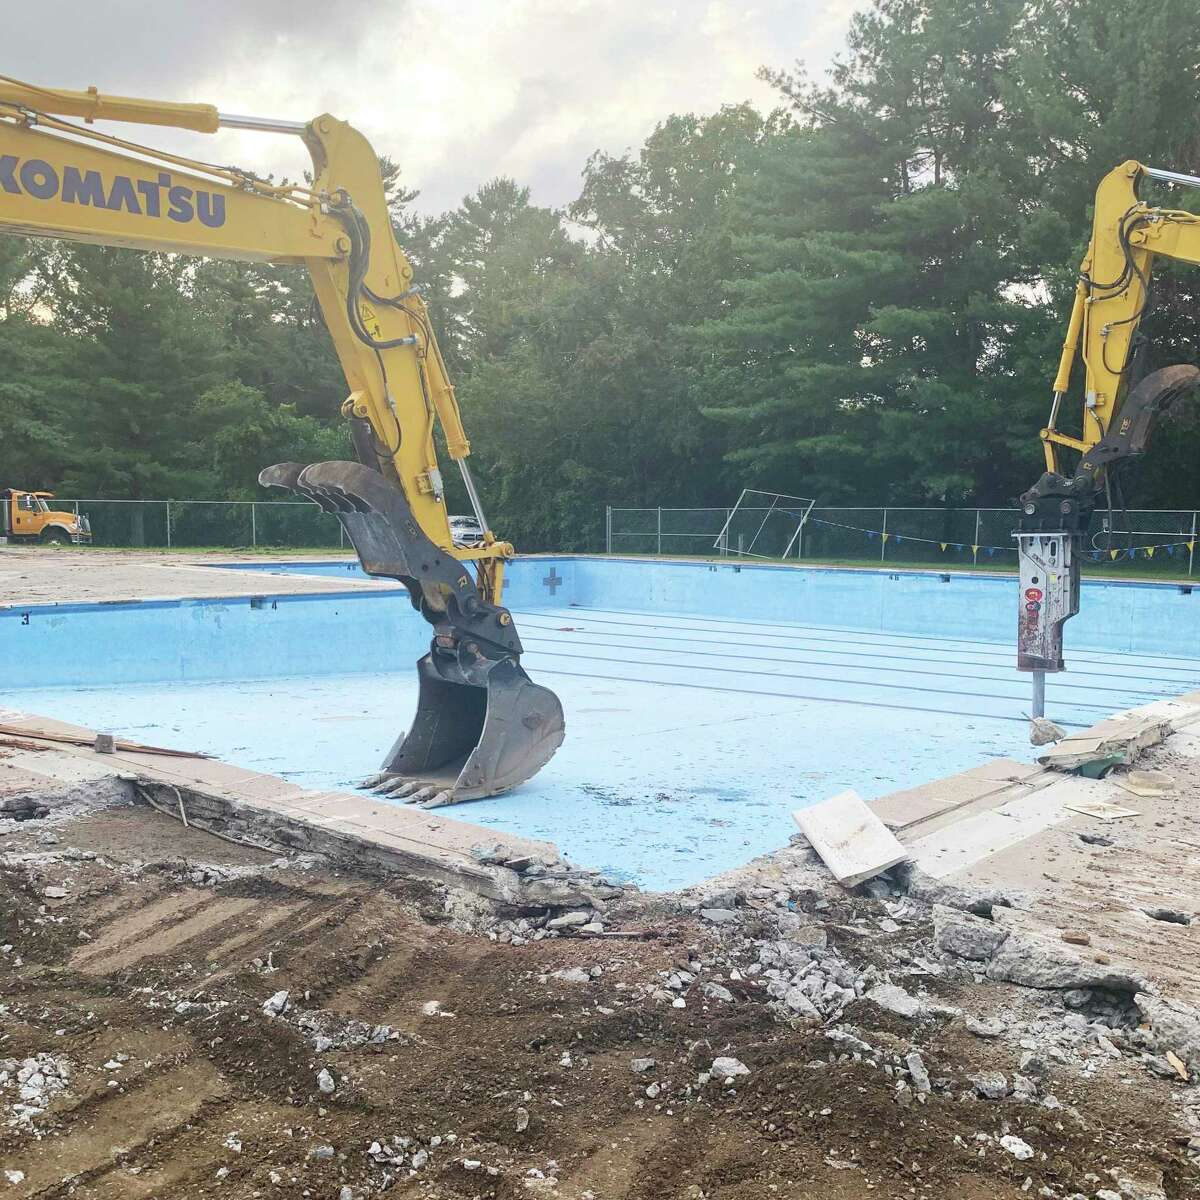 The demolition of the Veterans Memorial Pool on Walnut Grove Road in Middletown began on September 8, a project expected to cost $ 2 million.  The site will be transformed into a state-of-the-art facility accessible to ADA, with a new public bath, pavilion, addition of a wading pool, larger pool and more.